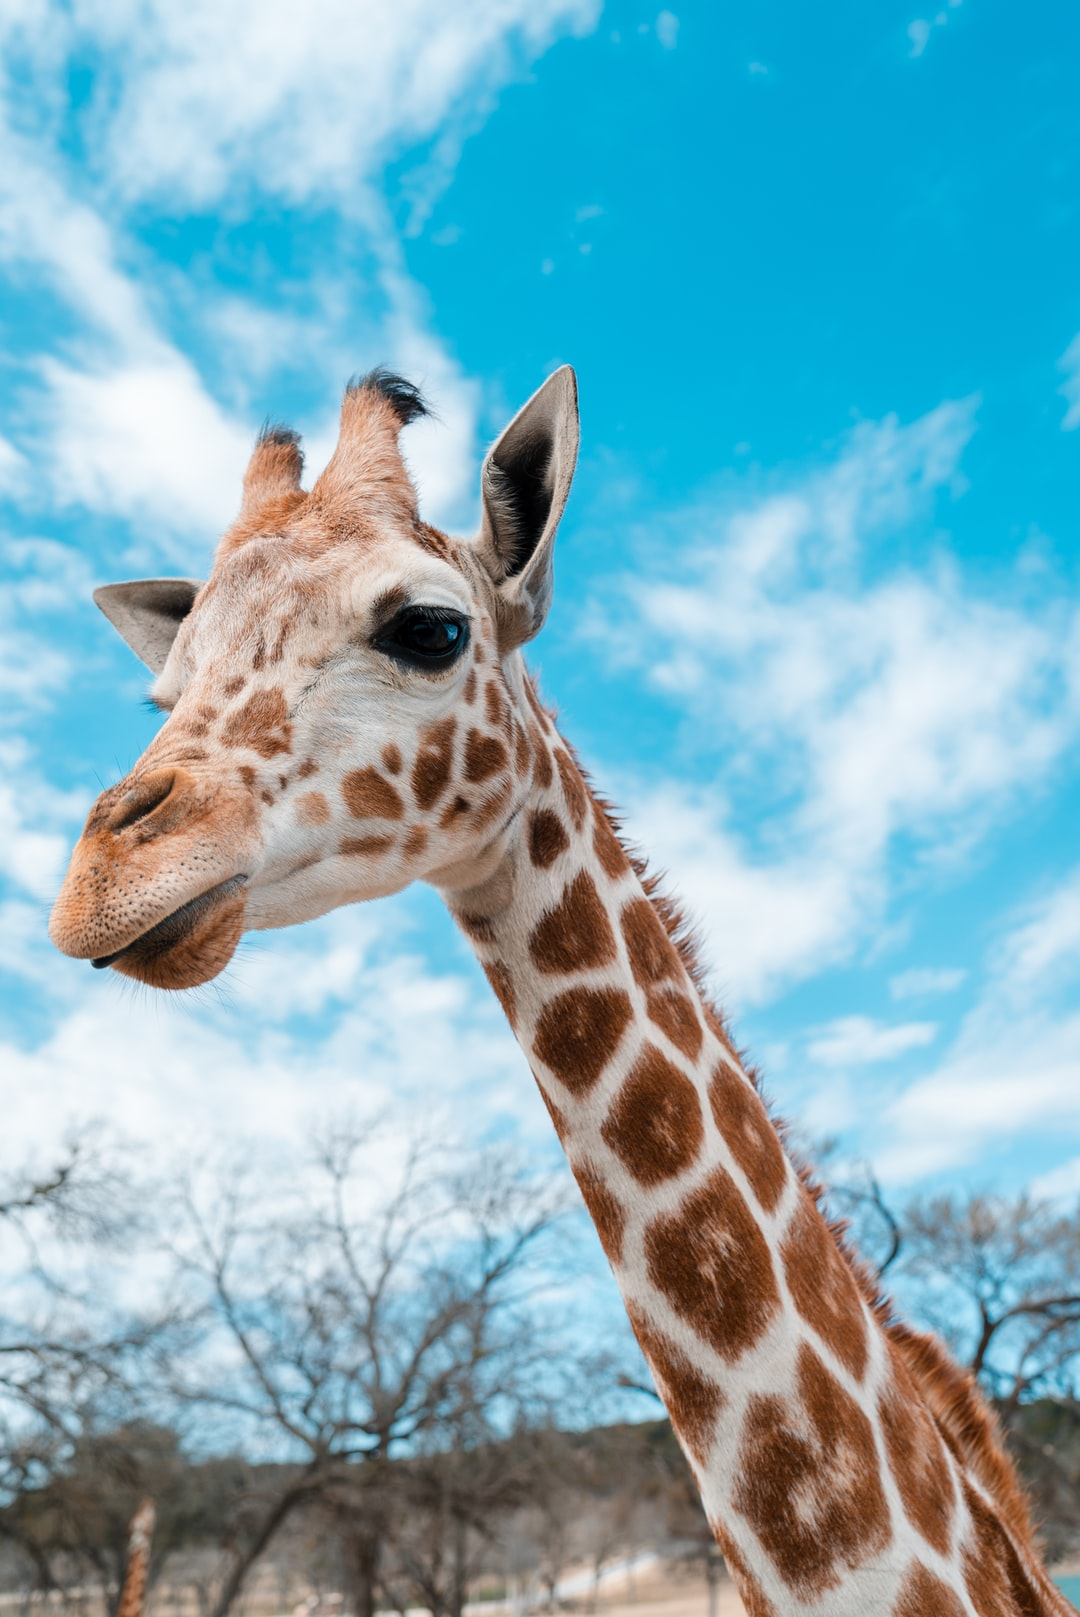 500 giraffe pictures hd free images on unsplash